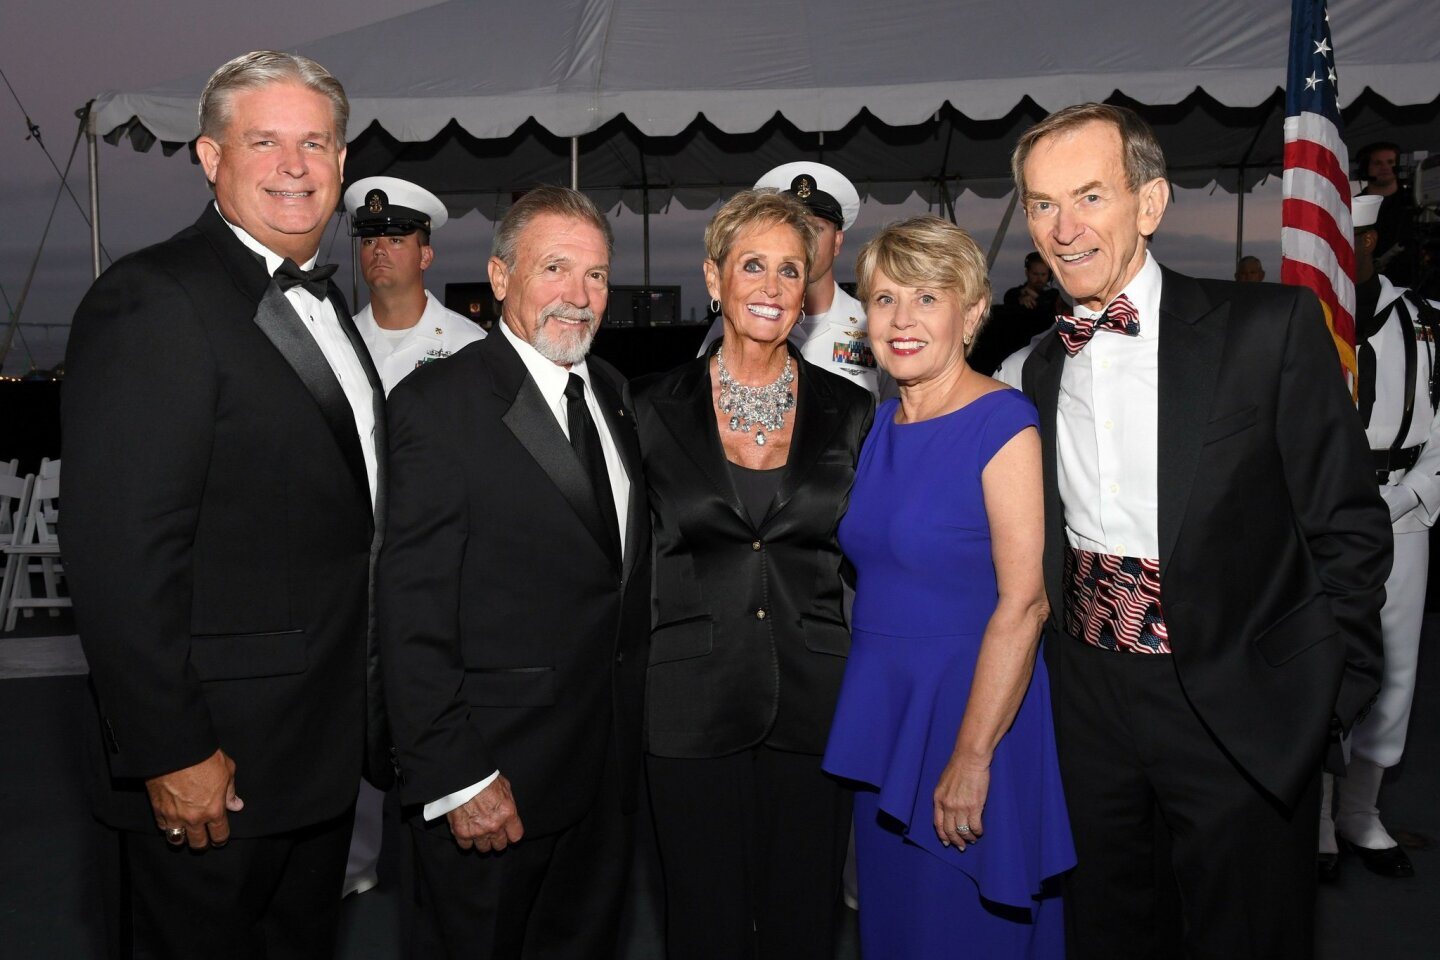 Daniel Beintema (Midway Foundation president), Phil and event chair Connie Conard, Ronne Froman Blue (Rear Admiral, USN, Ret.) and Linden Blue